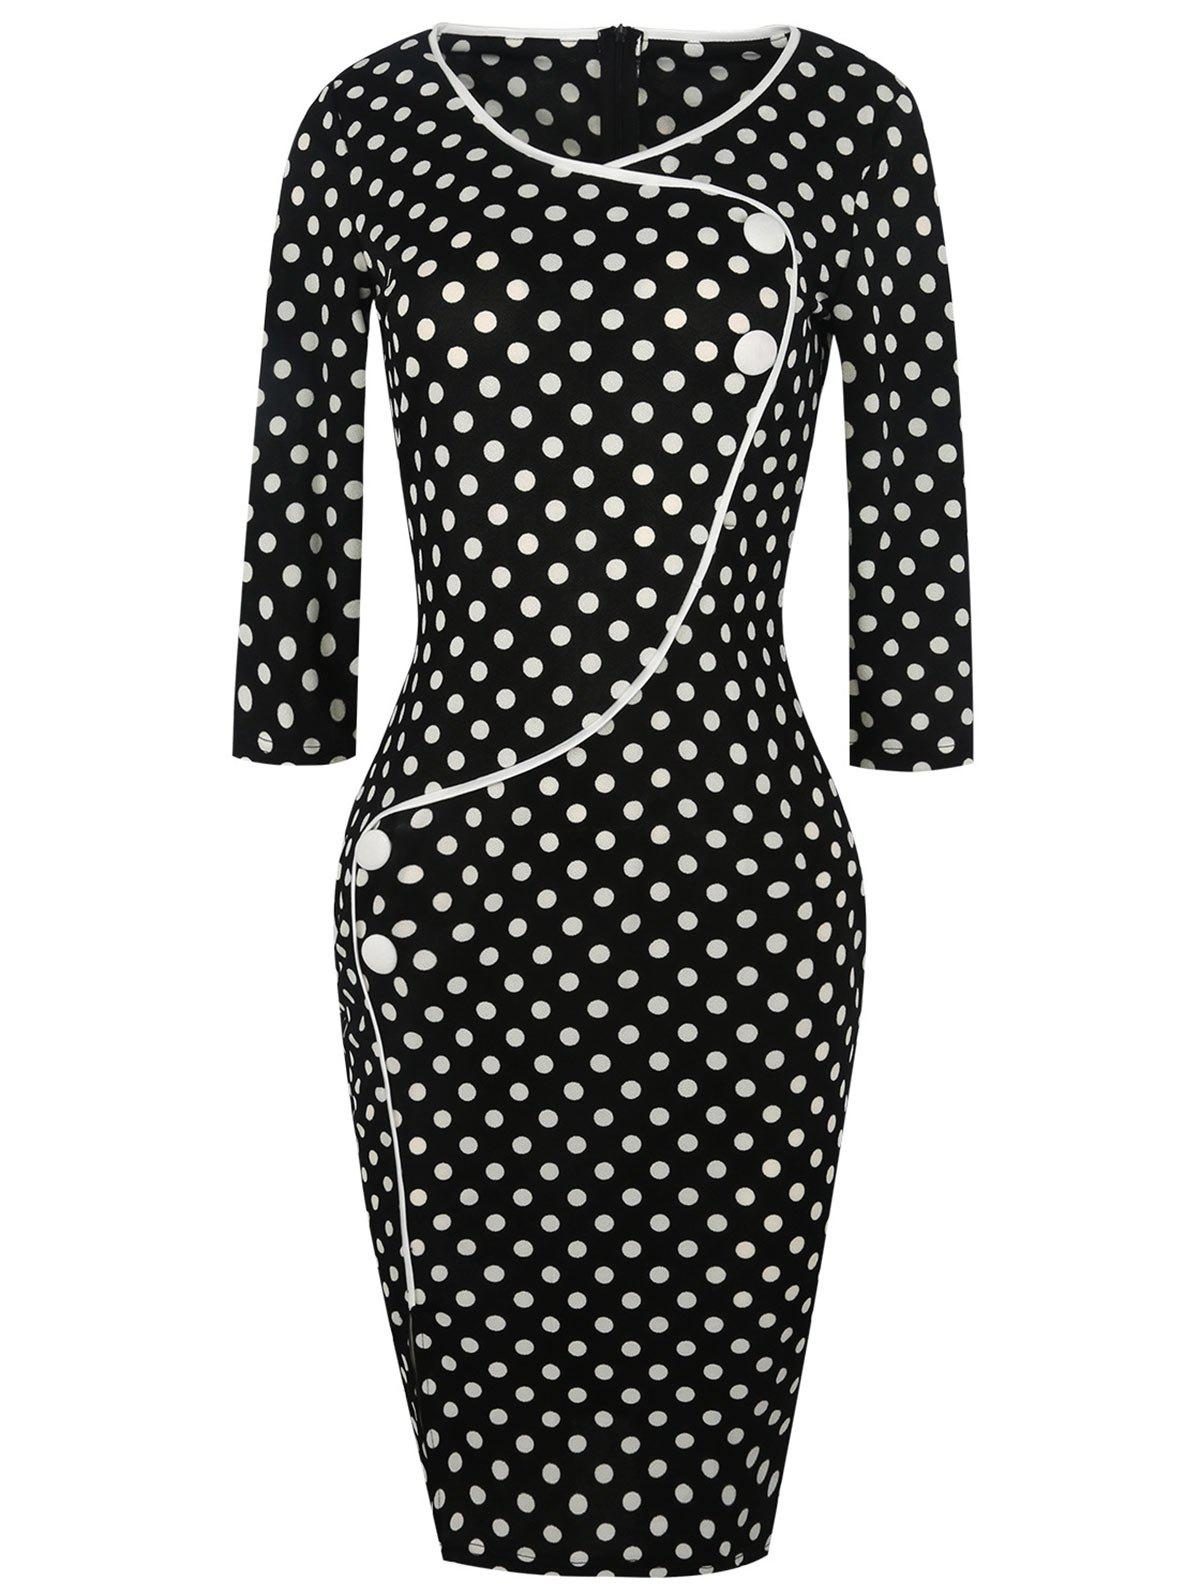 Polka Dot Buttons Slit Work Dress polka dot slit hem contrast dress